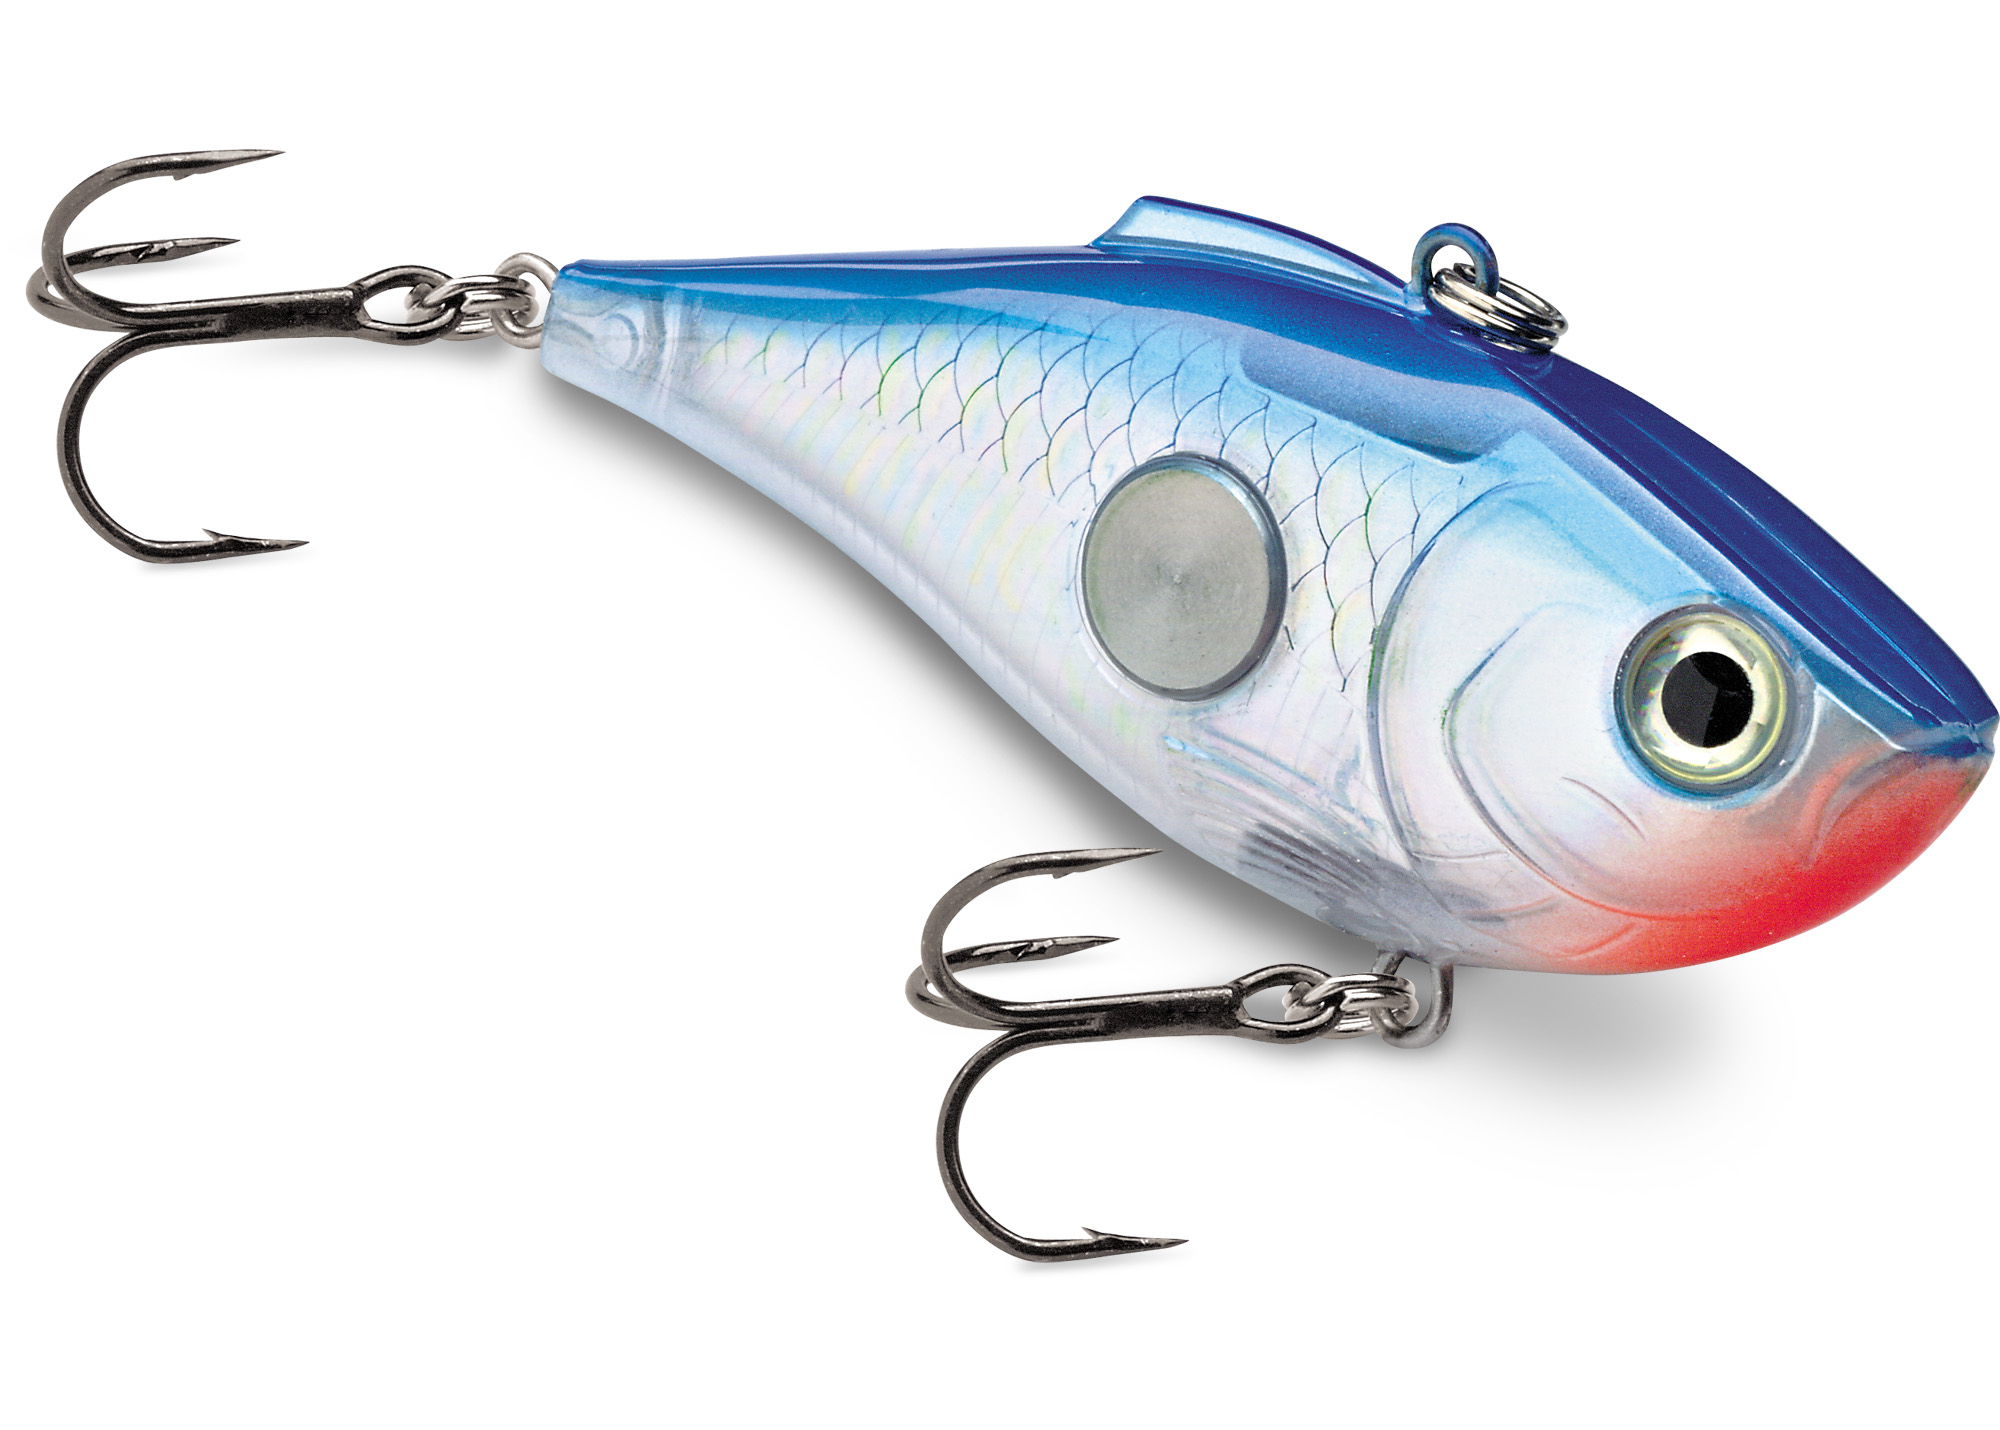 Clackin 39 rap for Rapala fishing pro series ps4